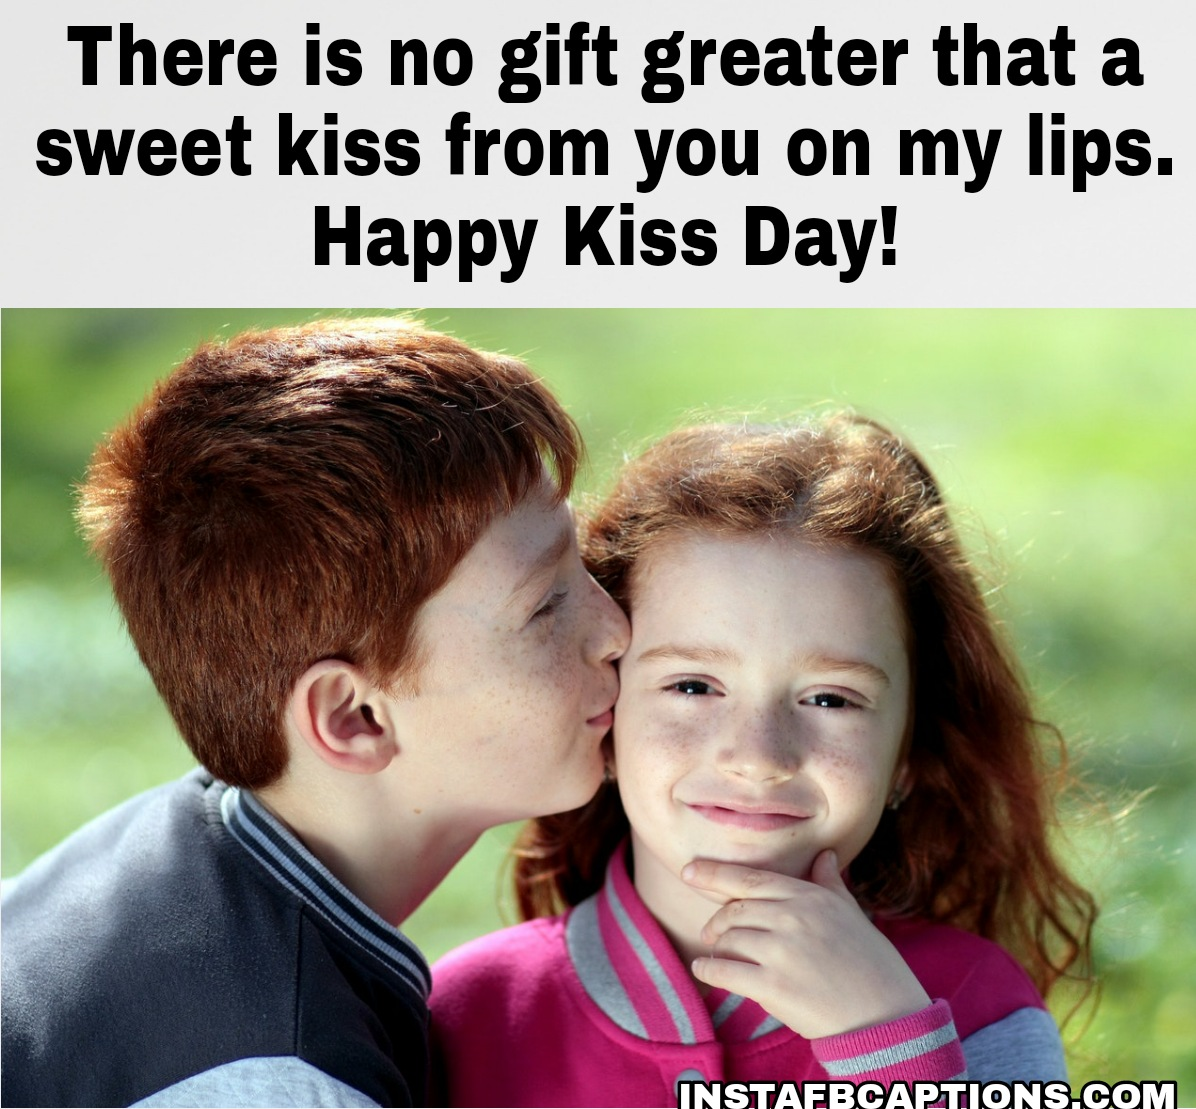 Kiss Day Status  - Kiss Day Status - 250+ Kiss Day Captions, Quotes, Messages, Wishes, Status